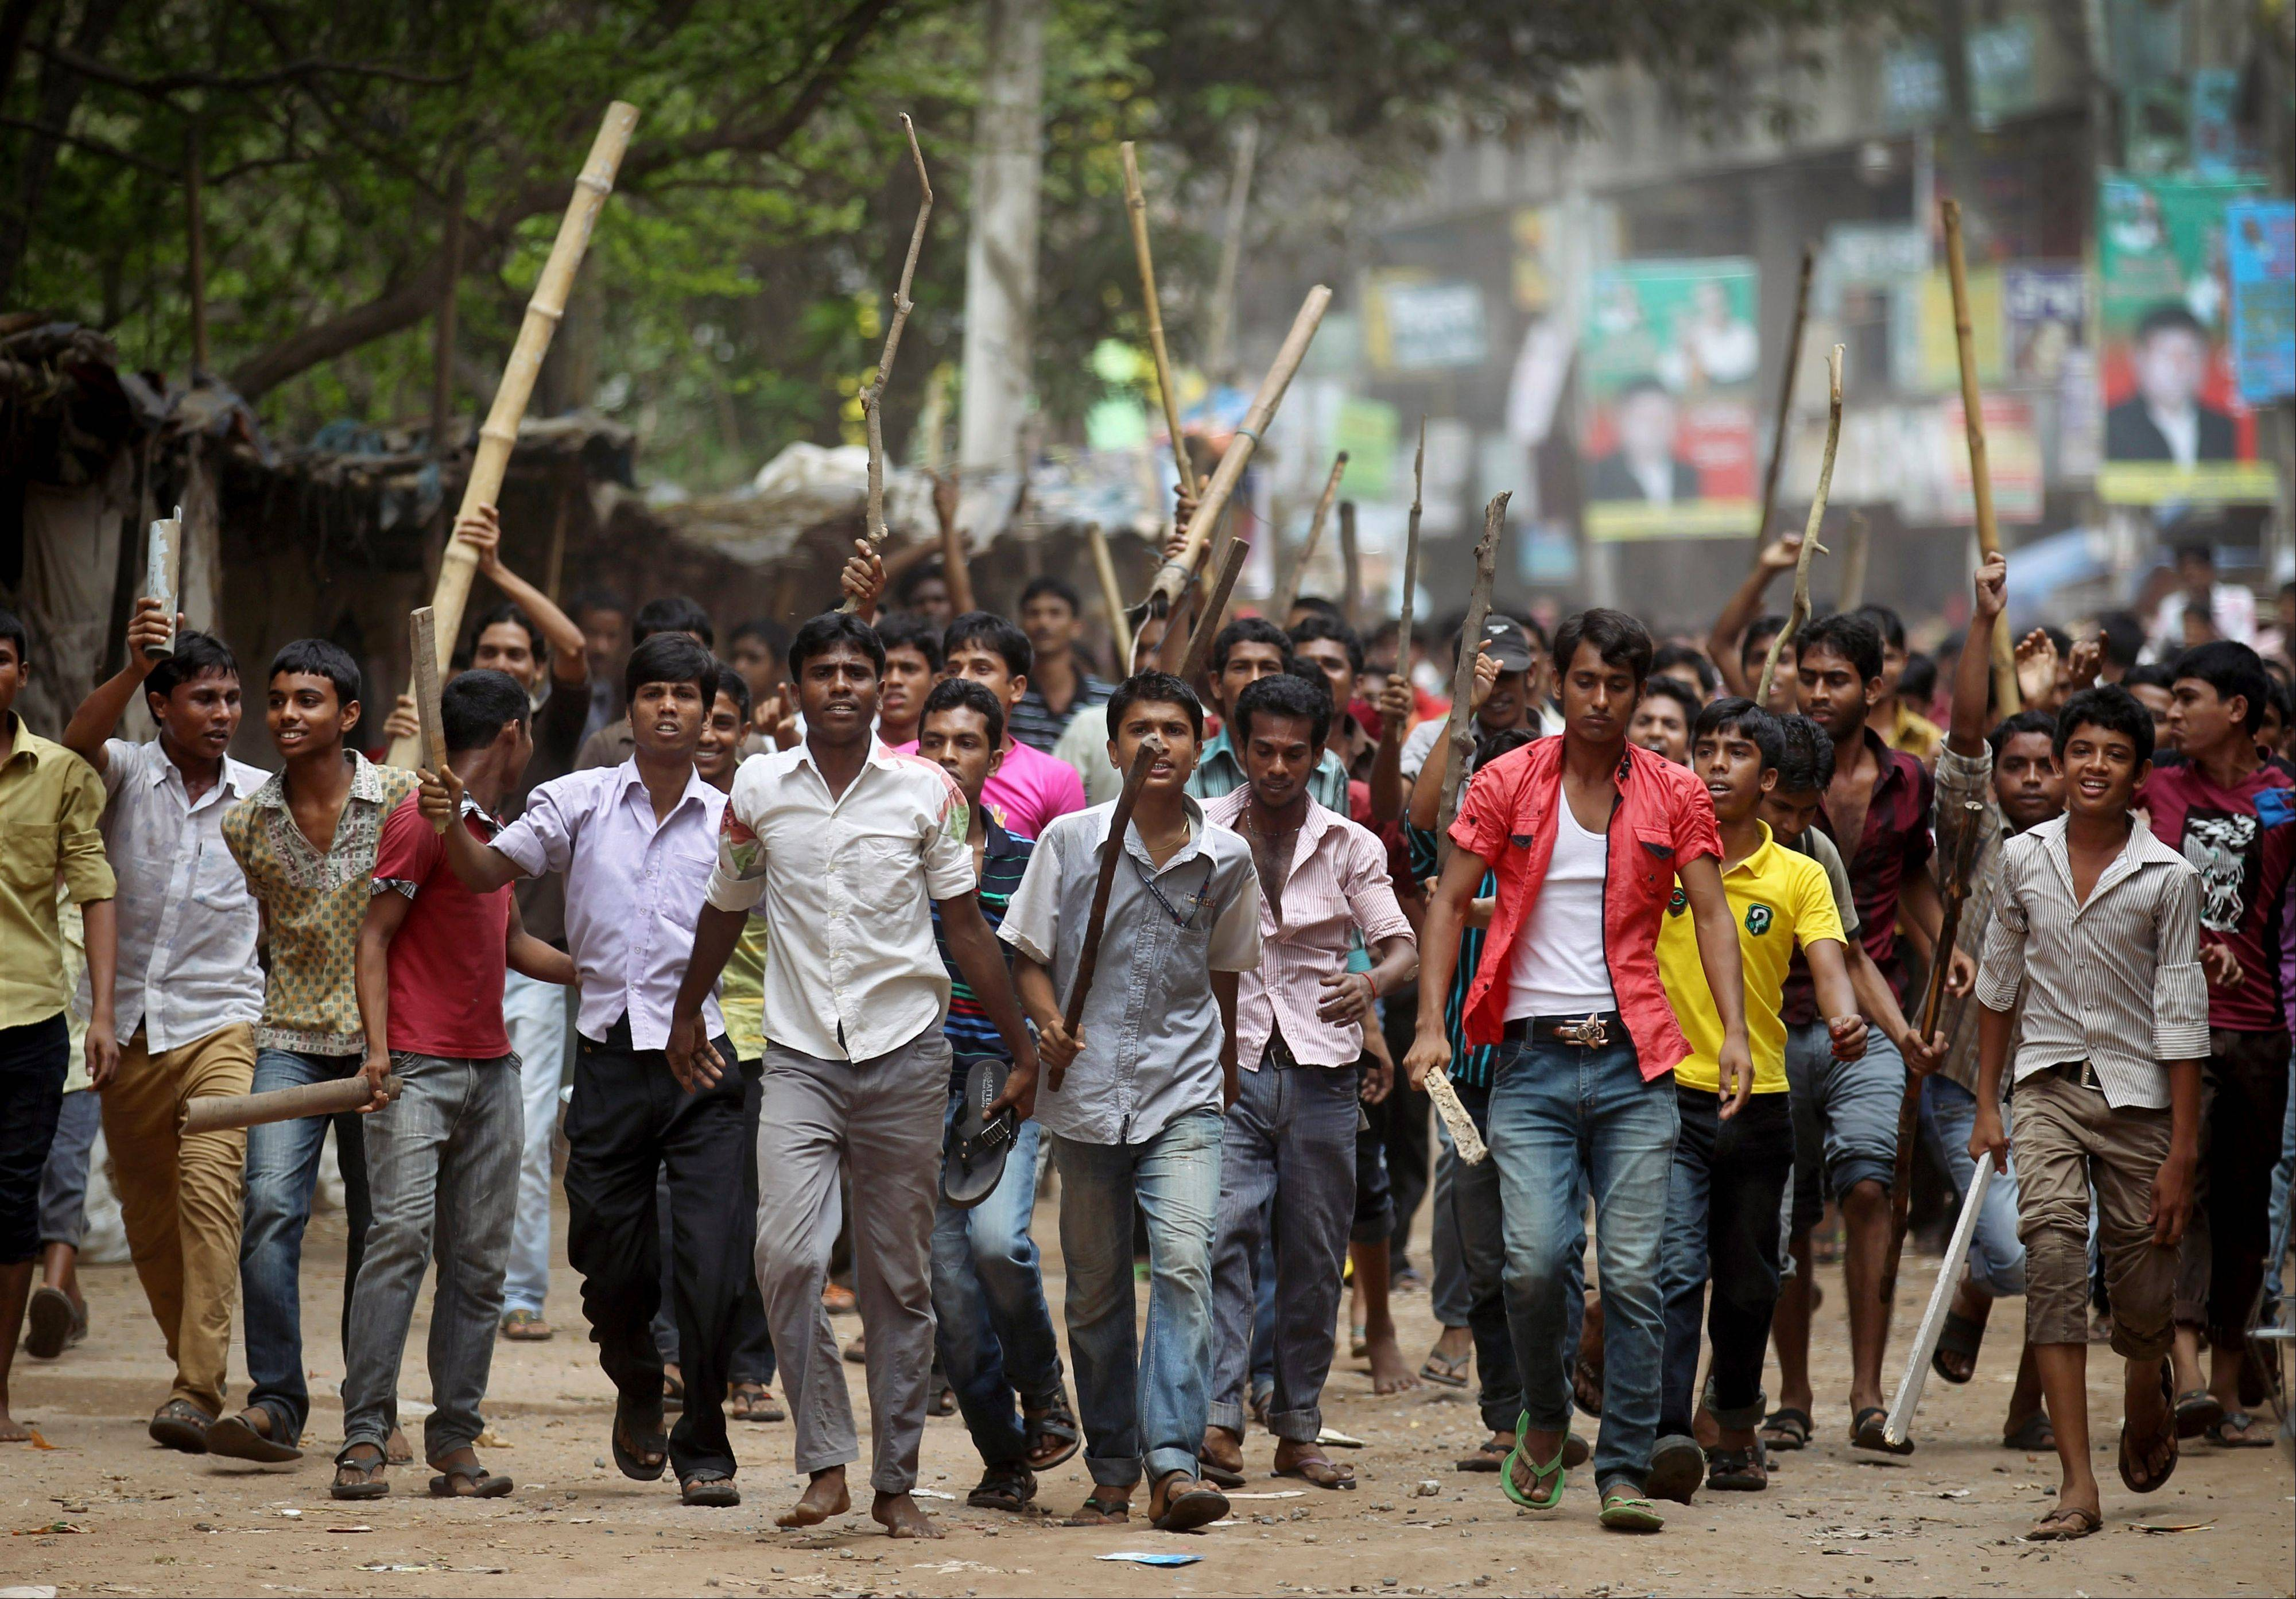 "Protesters march down a street demanding the death penalty for those responsible for the collapsed garment factory building, killing hundreds, Tuesday, April 30, 2013 in Savar, near Dhaka, Bangladesh. A top Bangladesh court on Tuesday ordered the government to ""immediately"" confiscate the property of a collapsed building's owner, as thousands of protesters demanding death penalty for the man clashed with police, leaving 100 people injured."